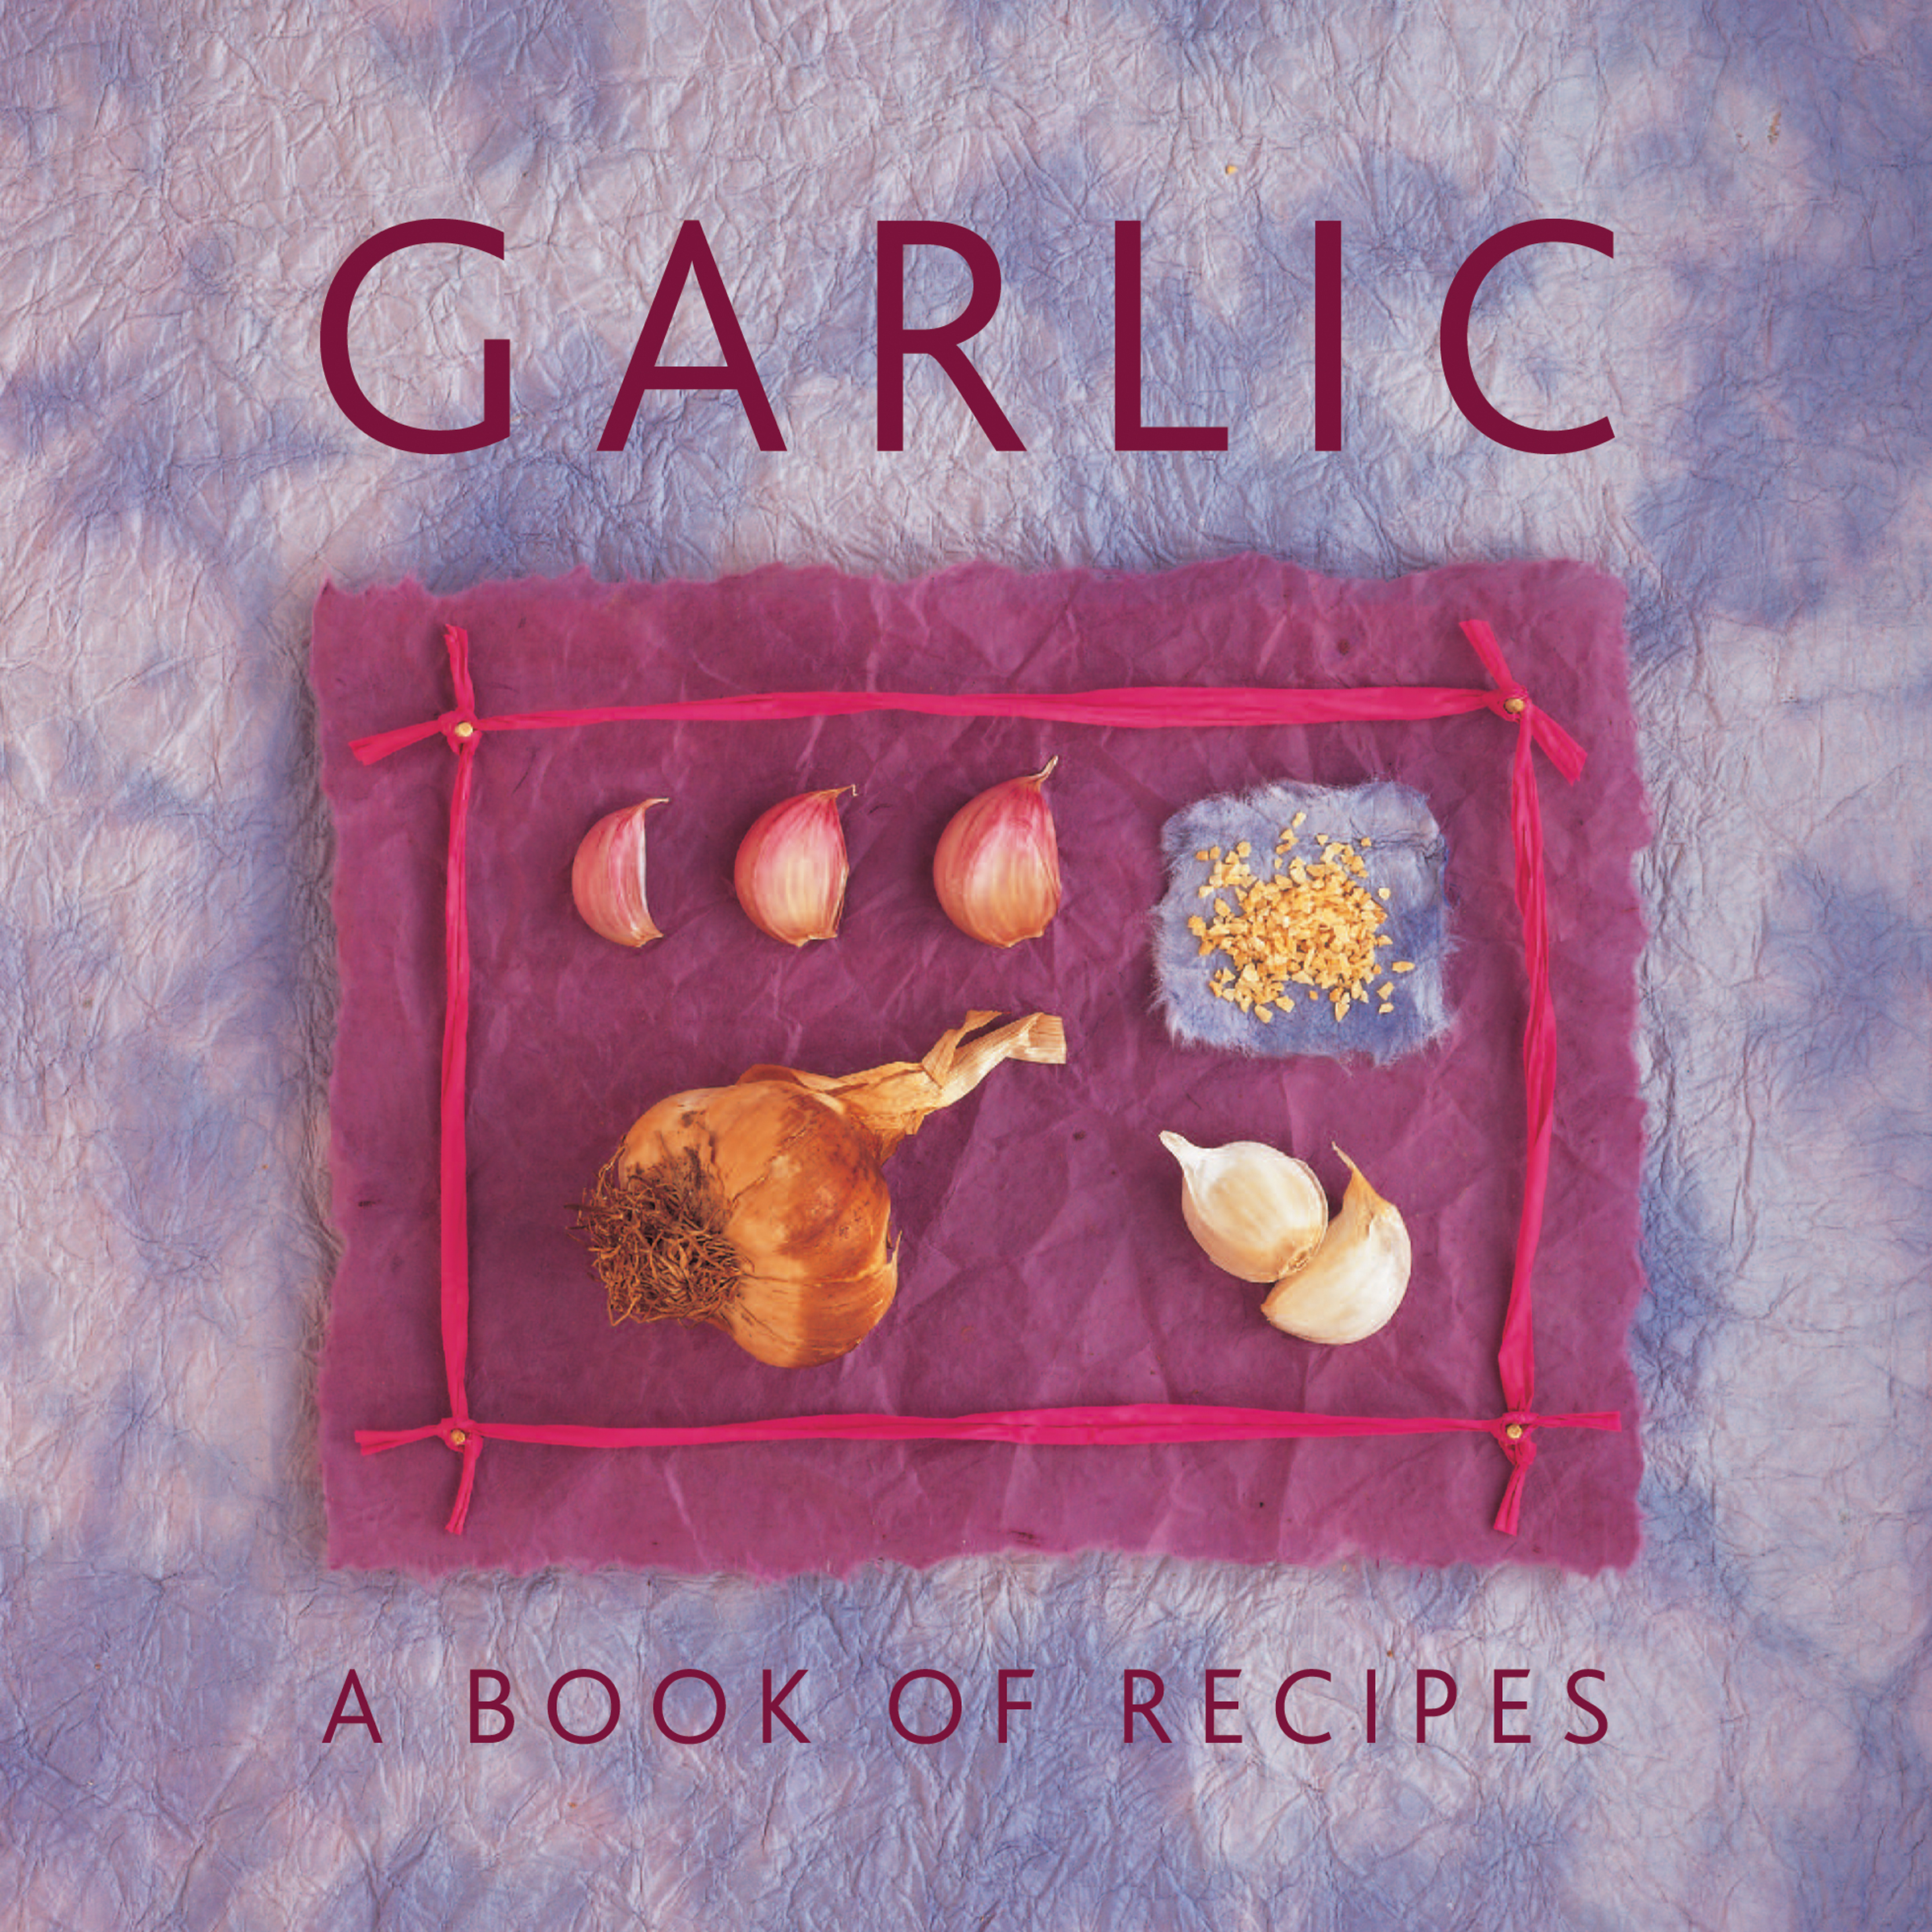 Garlic A Book of Recipes